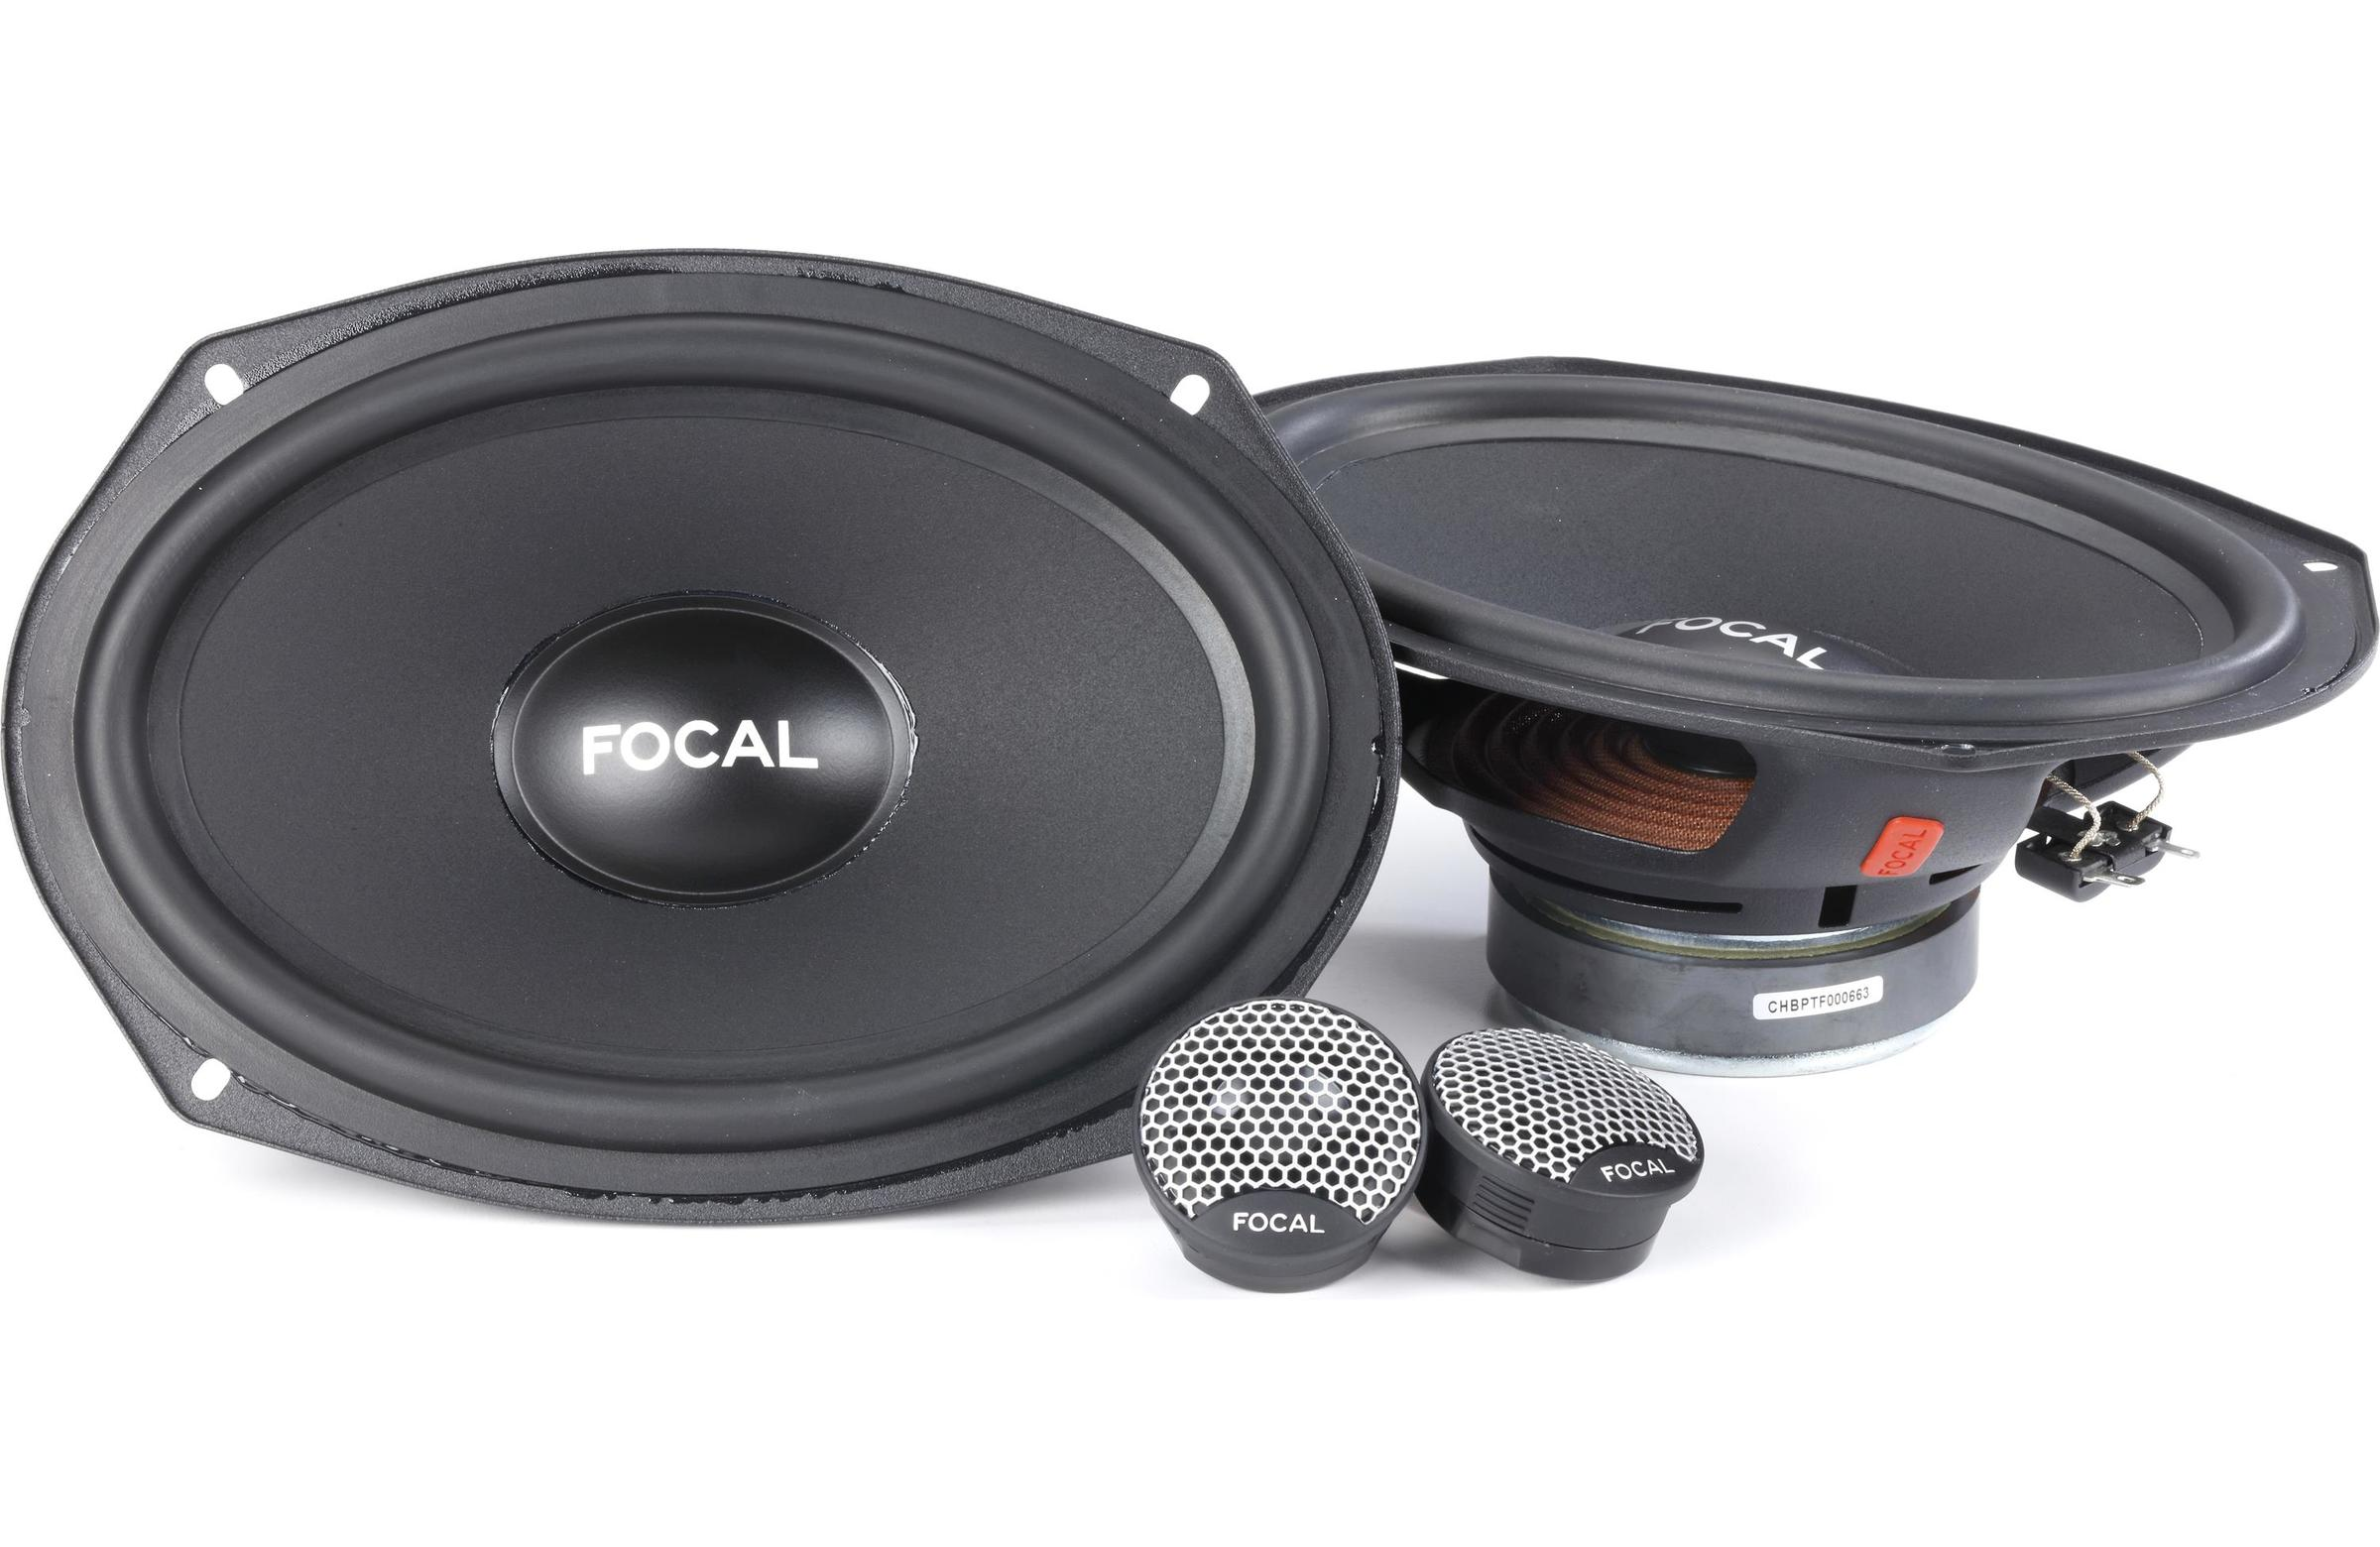 FOCAL INTEGRATION UNIVERSAL ISU 690 2-WAY COMPONENT CAR SPEAKERS